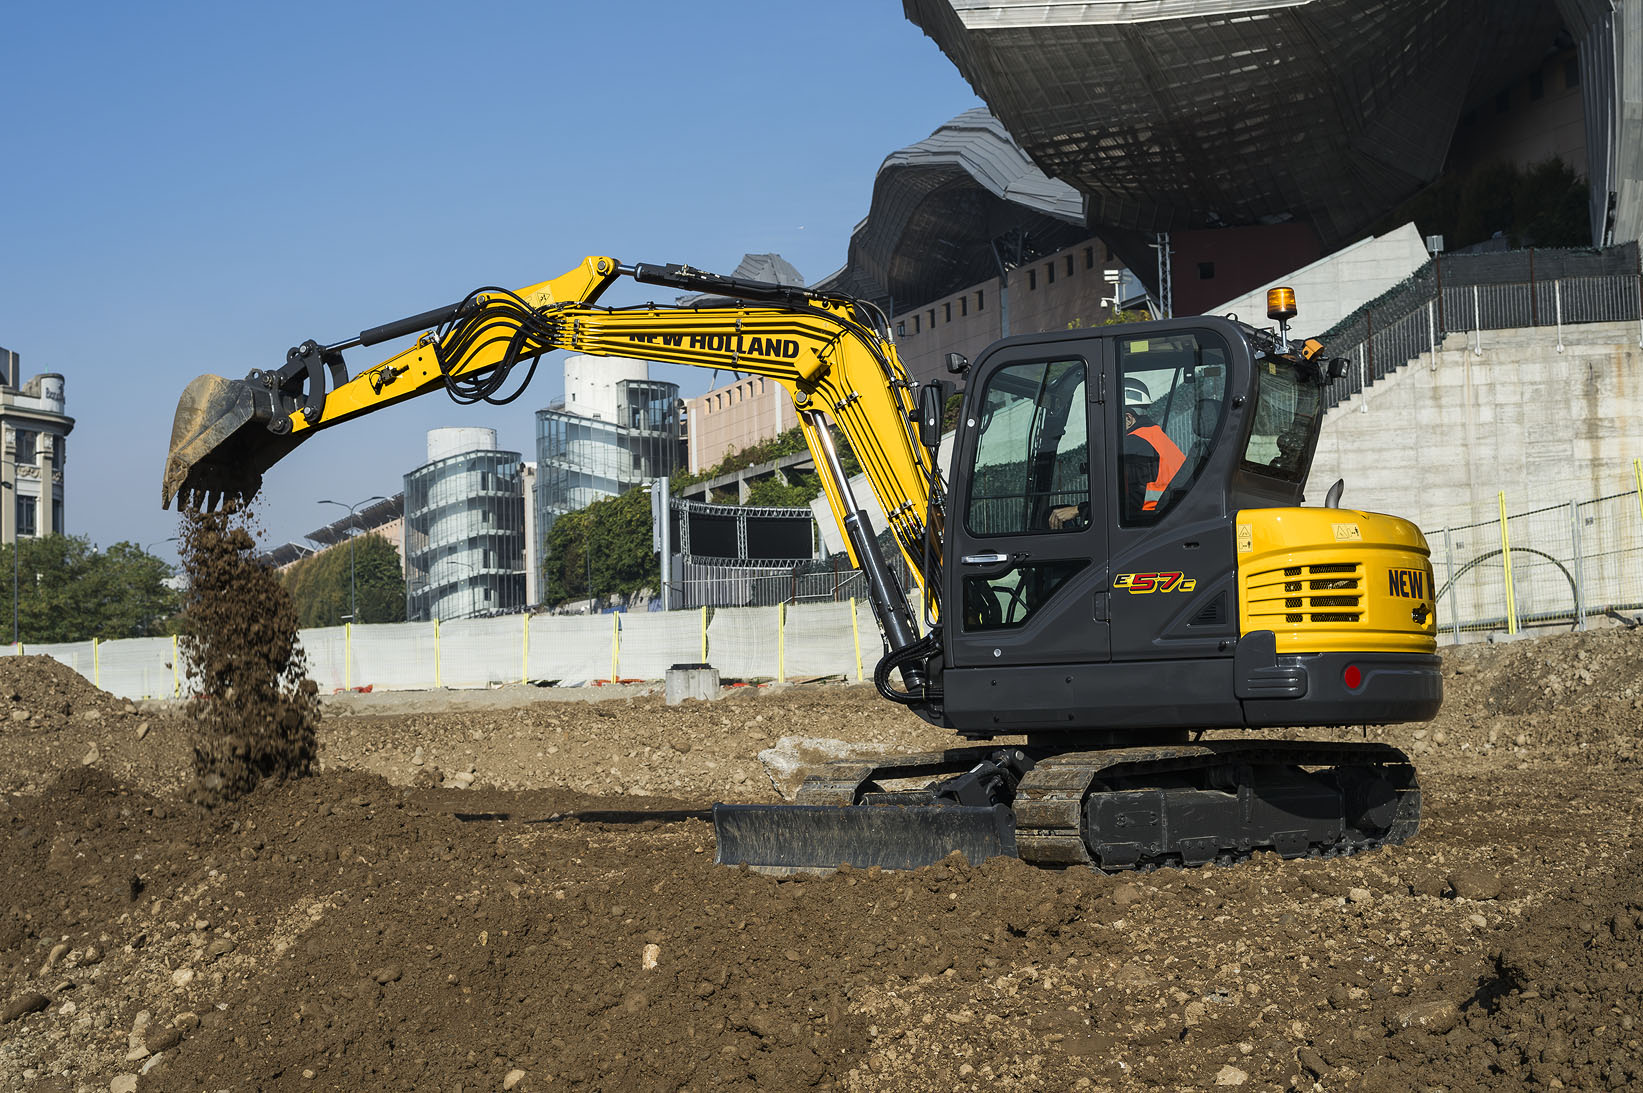 New Holland Compact Excavators - C-Series E57C